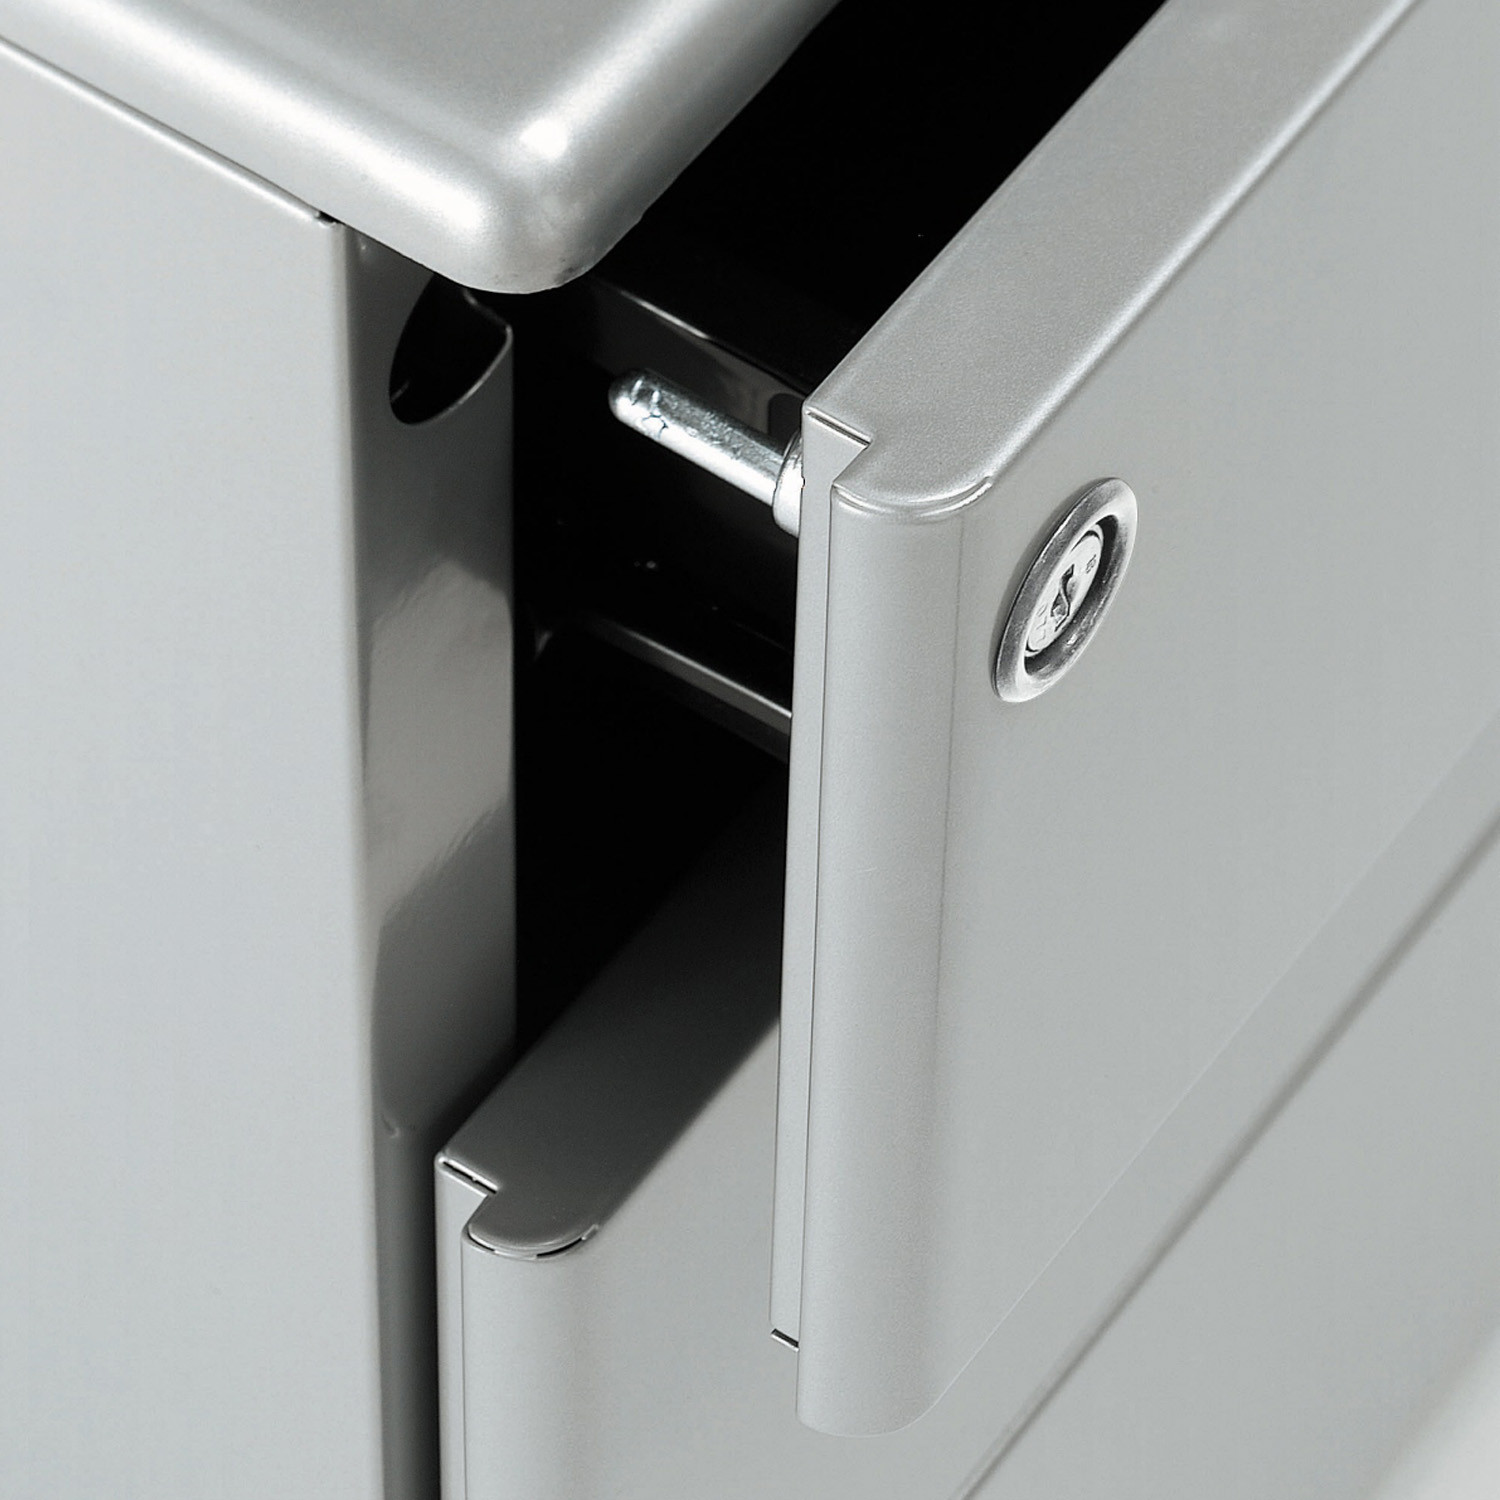 Universal Freestanding Pedestal locking detail